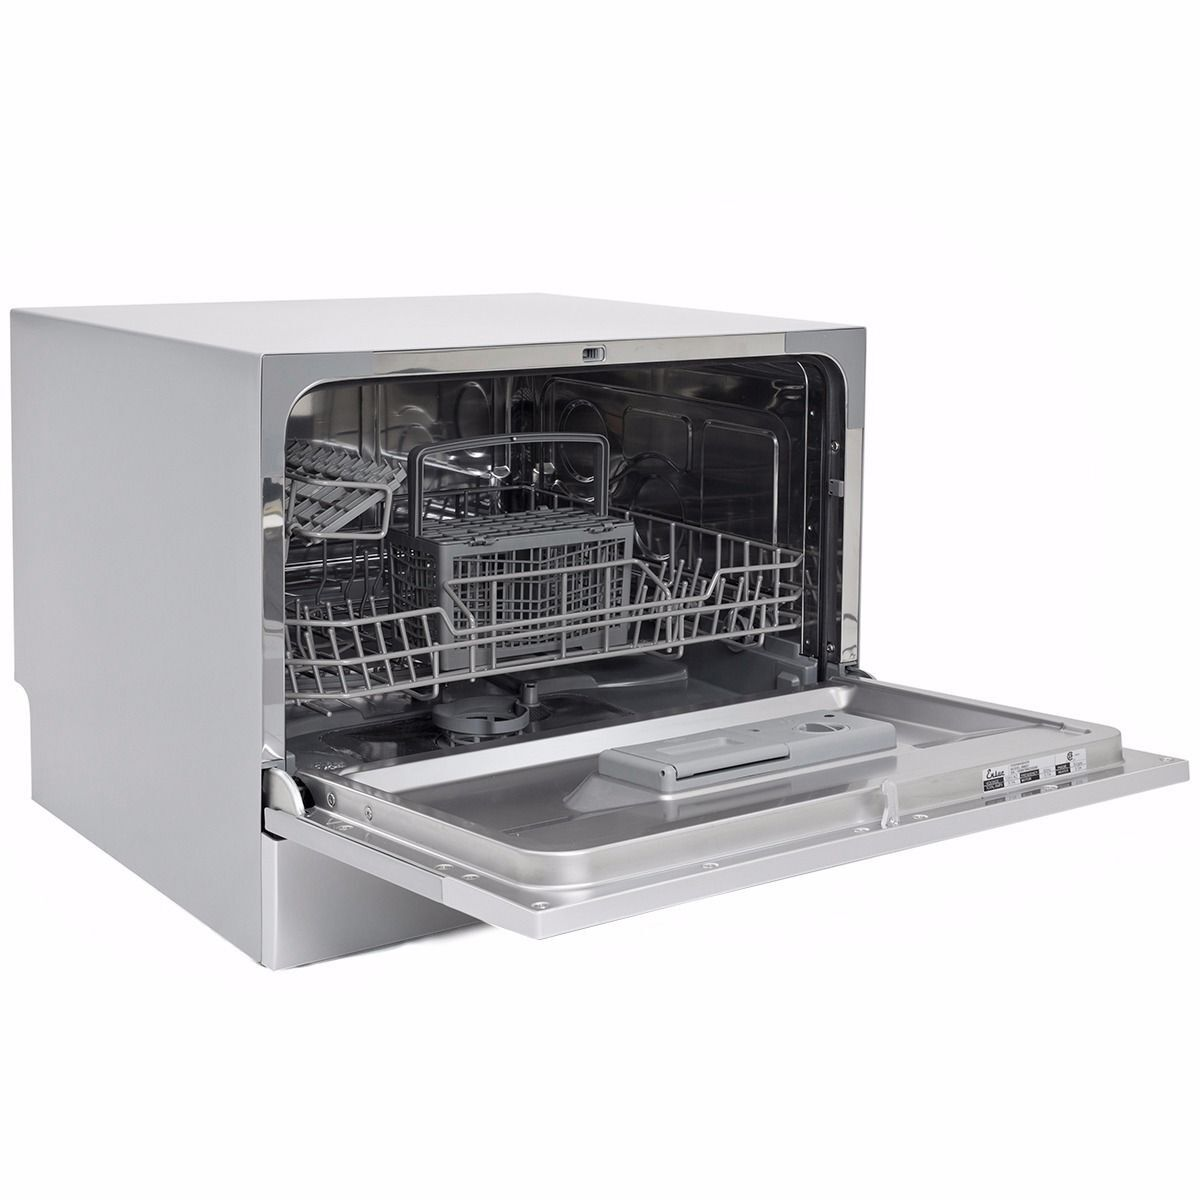 Countertop Dishwasher Silver Portable Compact Energy Star